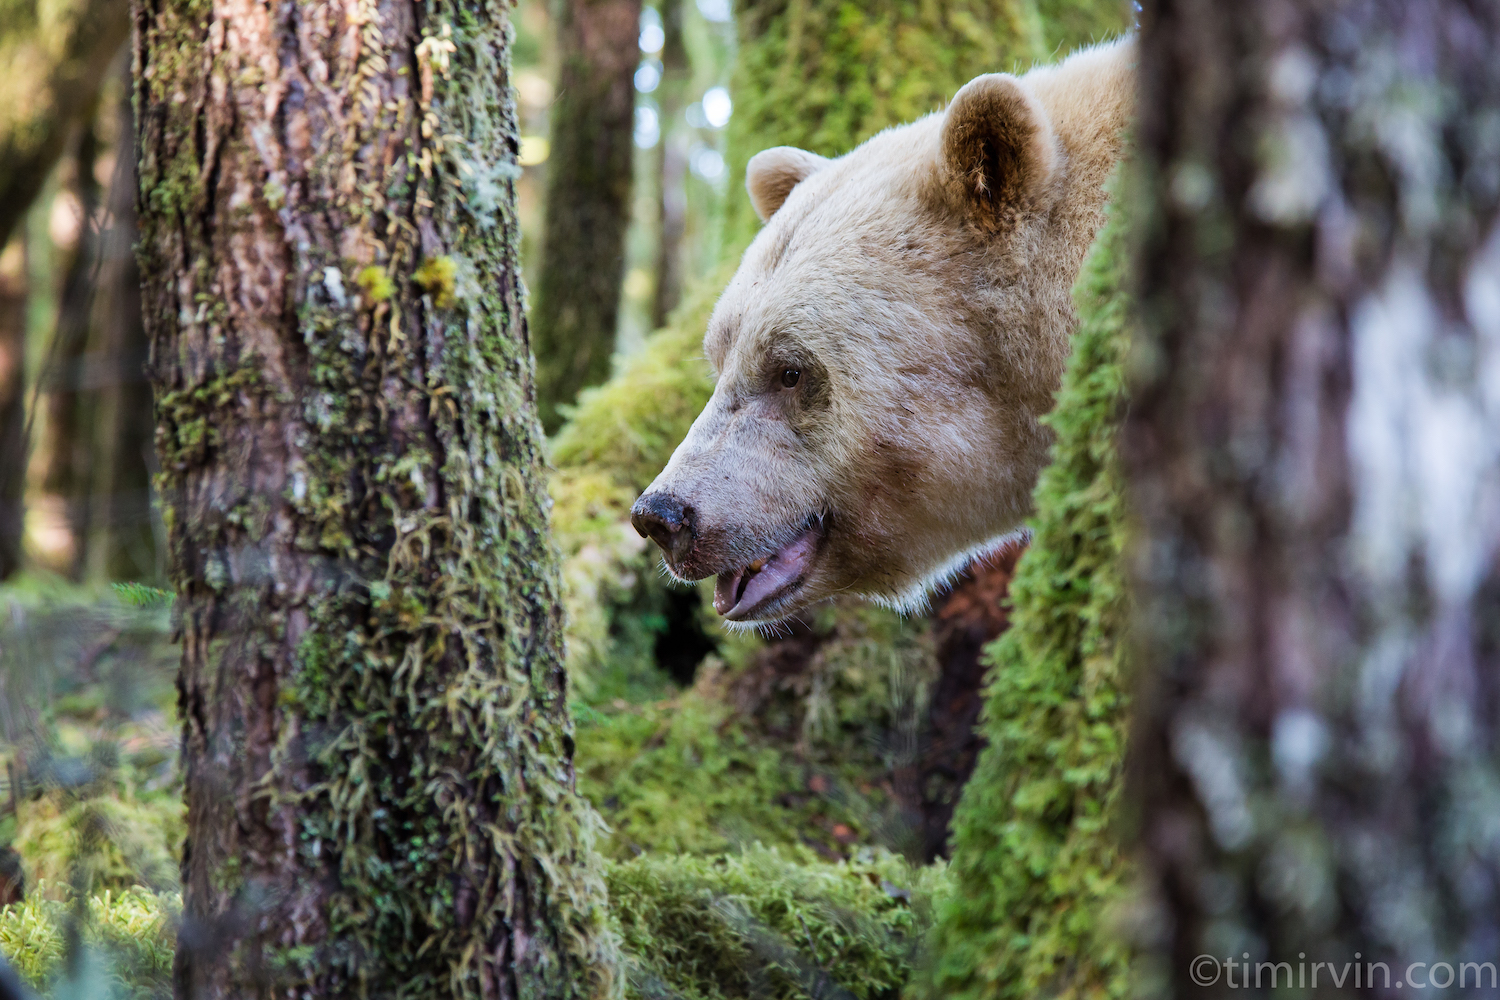 The head of a male spirit, or Kermode, bear visible among the trees within the forest